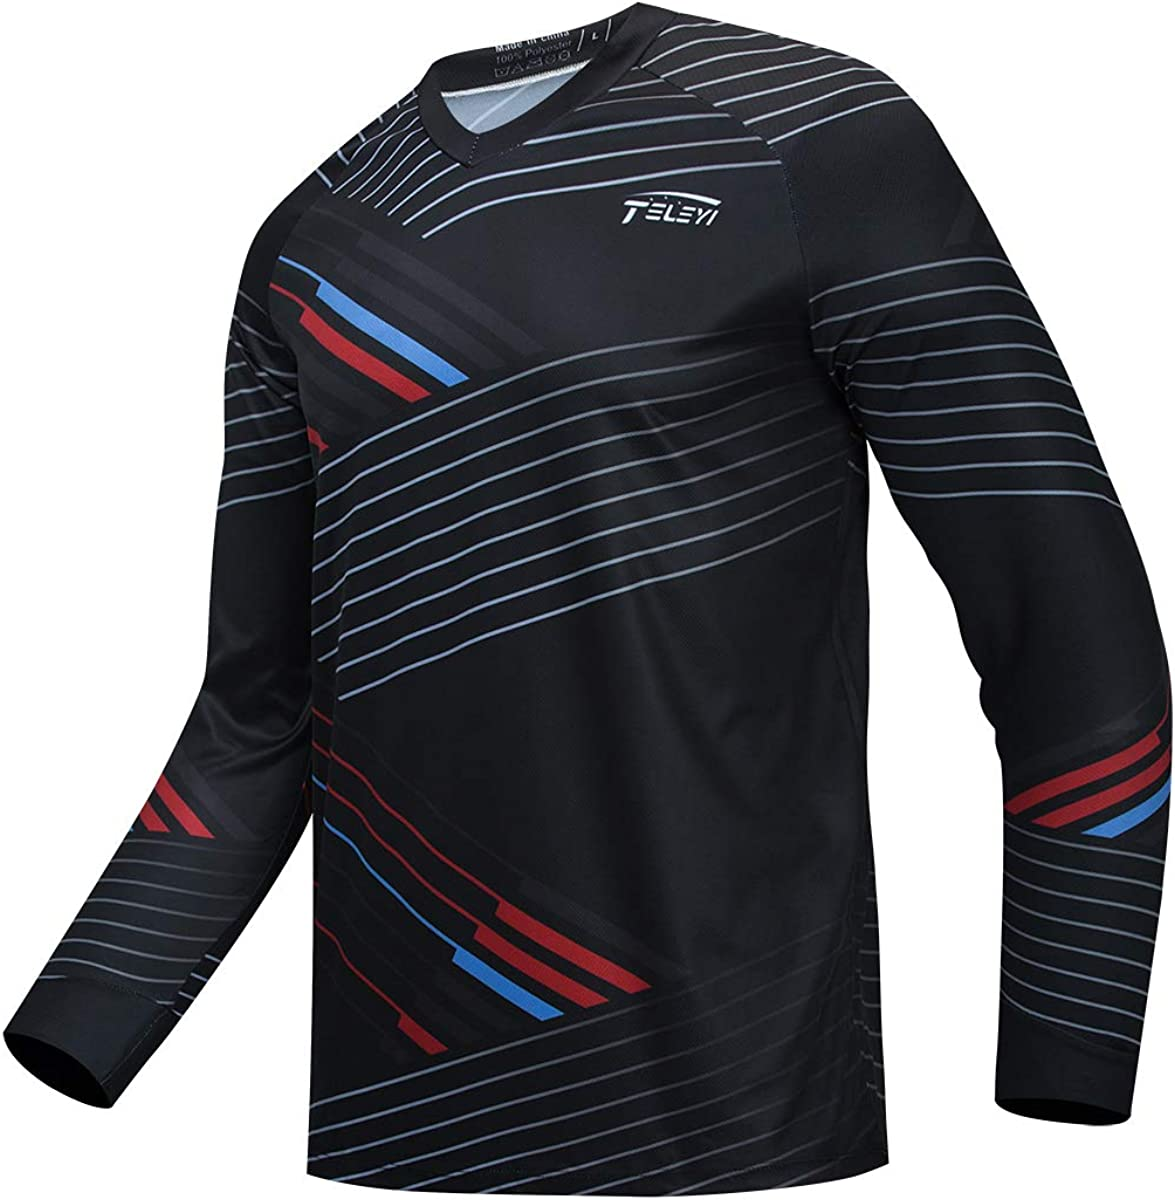 At the price of surprise JPOJPO Regular discount Downhill Cycling Jersey Men's Long Racing M Sleeve